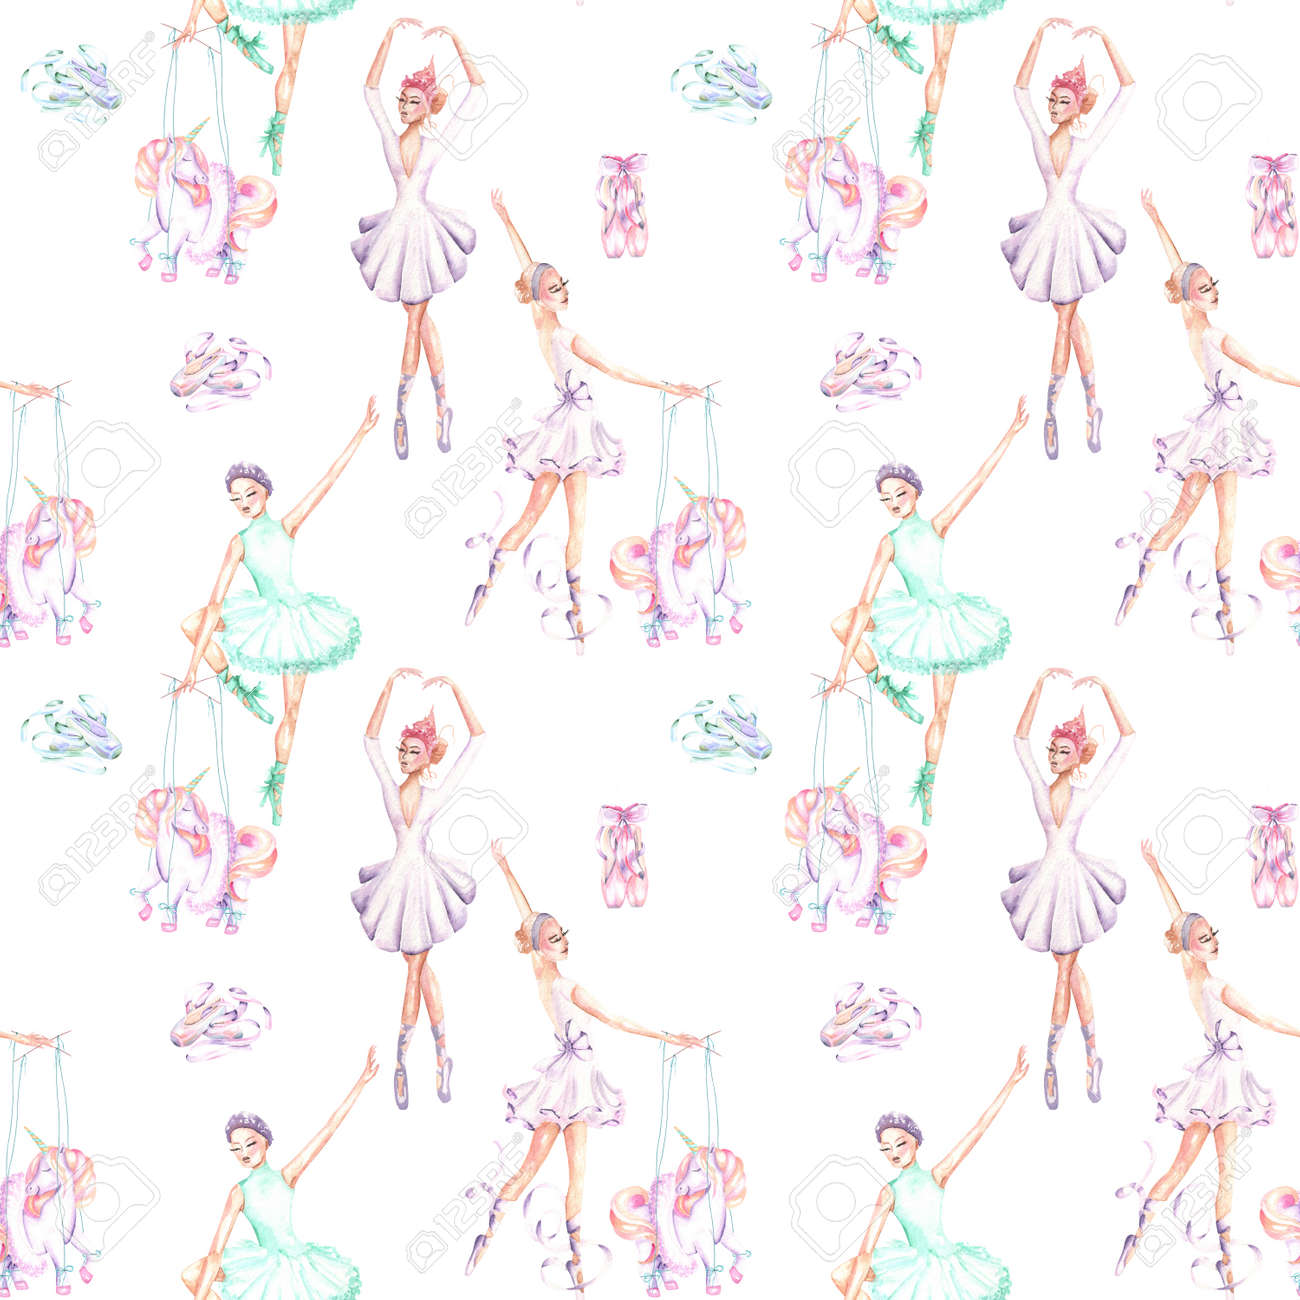 Seamless pattern of ballet dancers royalty free stock photography - Seamless Pattern With Watercolor Ballet Dancers Puppet Unicorns And Pointe Shoes Hand Drawn Isolated